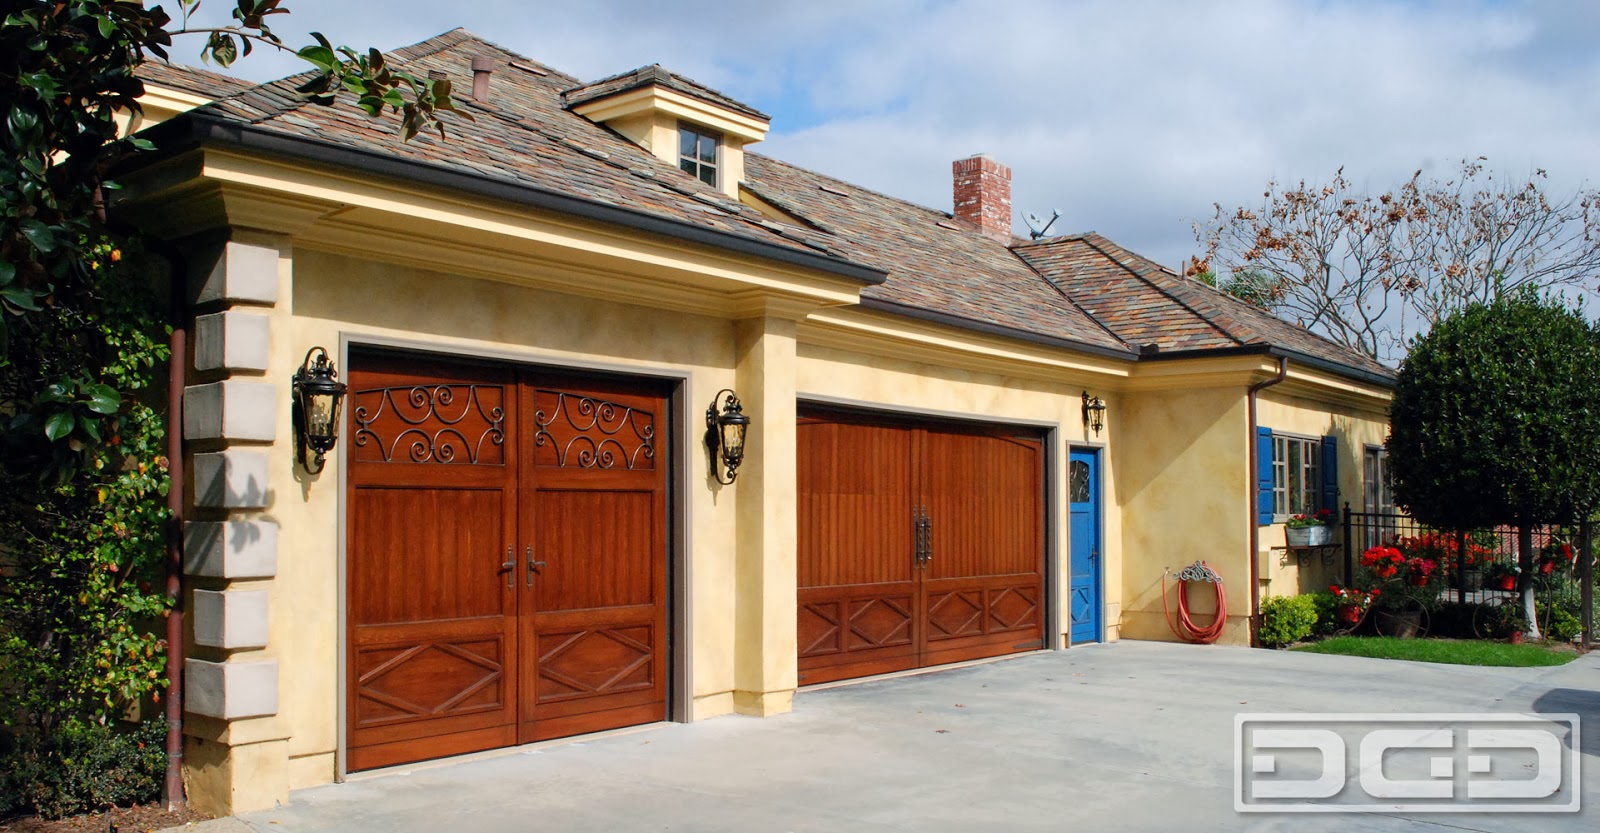 Custom Wood Garage Doors in a French Design